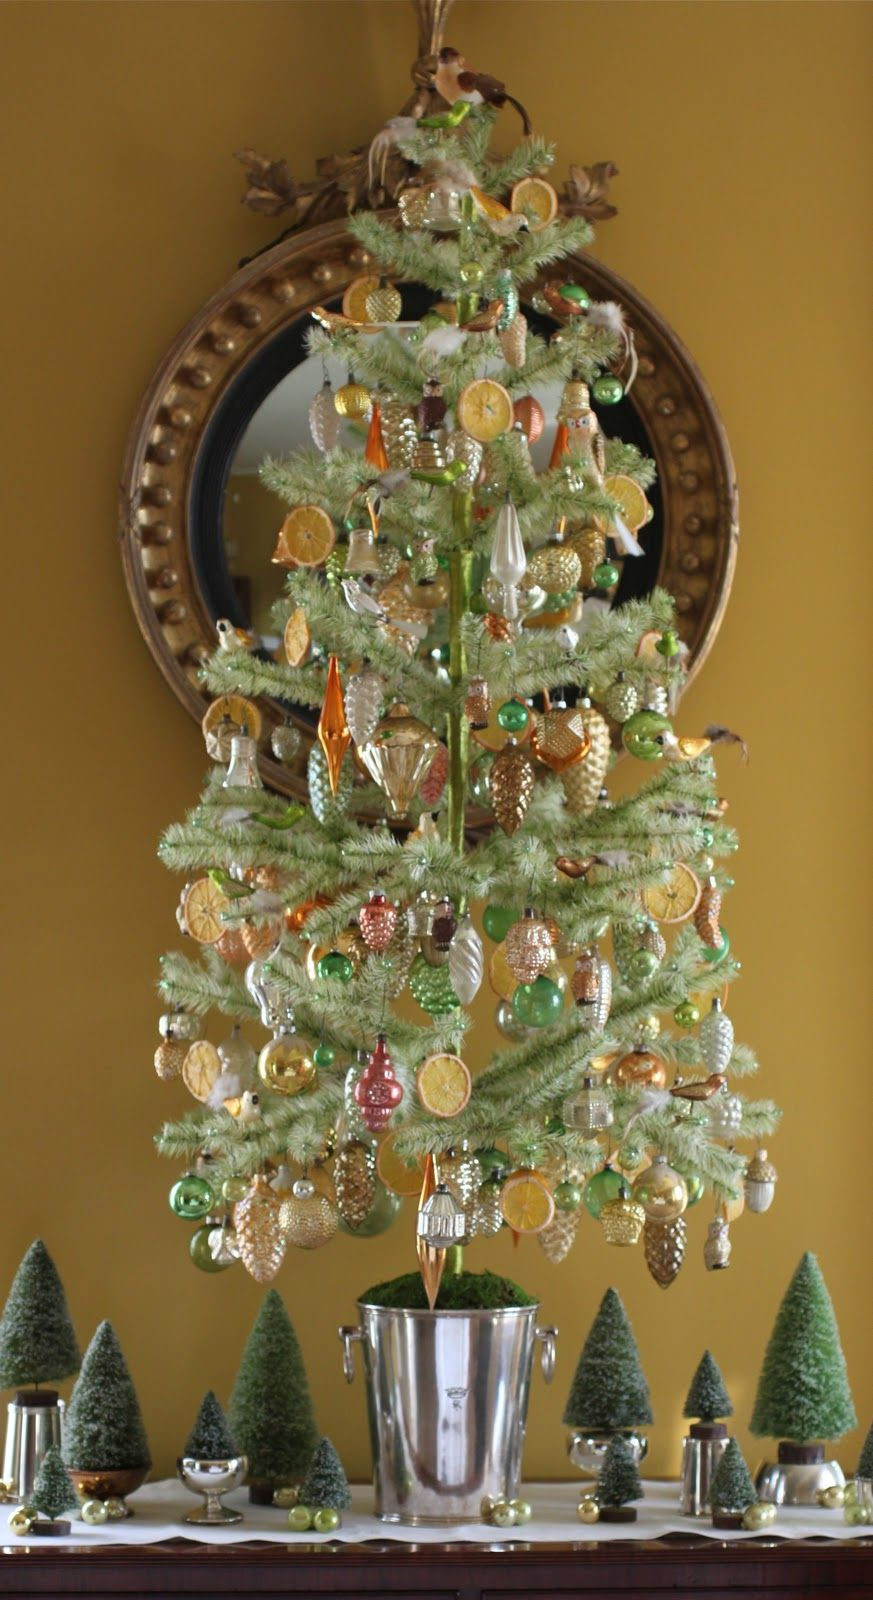 Feather tree, vintage ornaments, real slices of orange